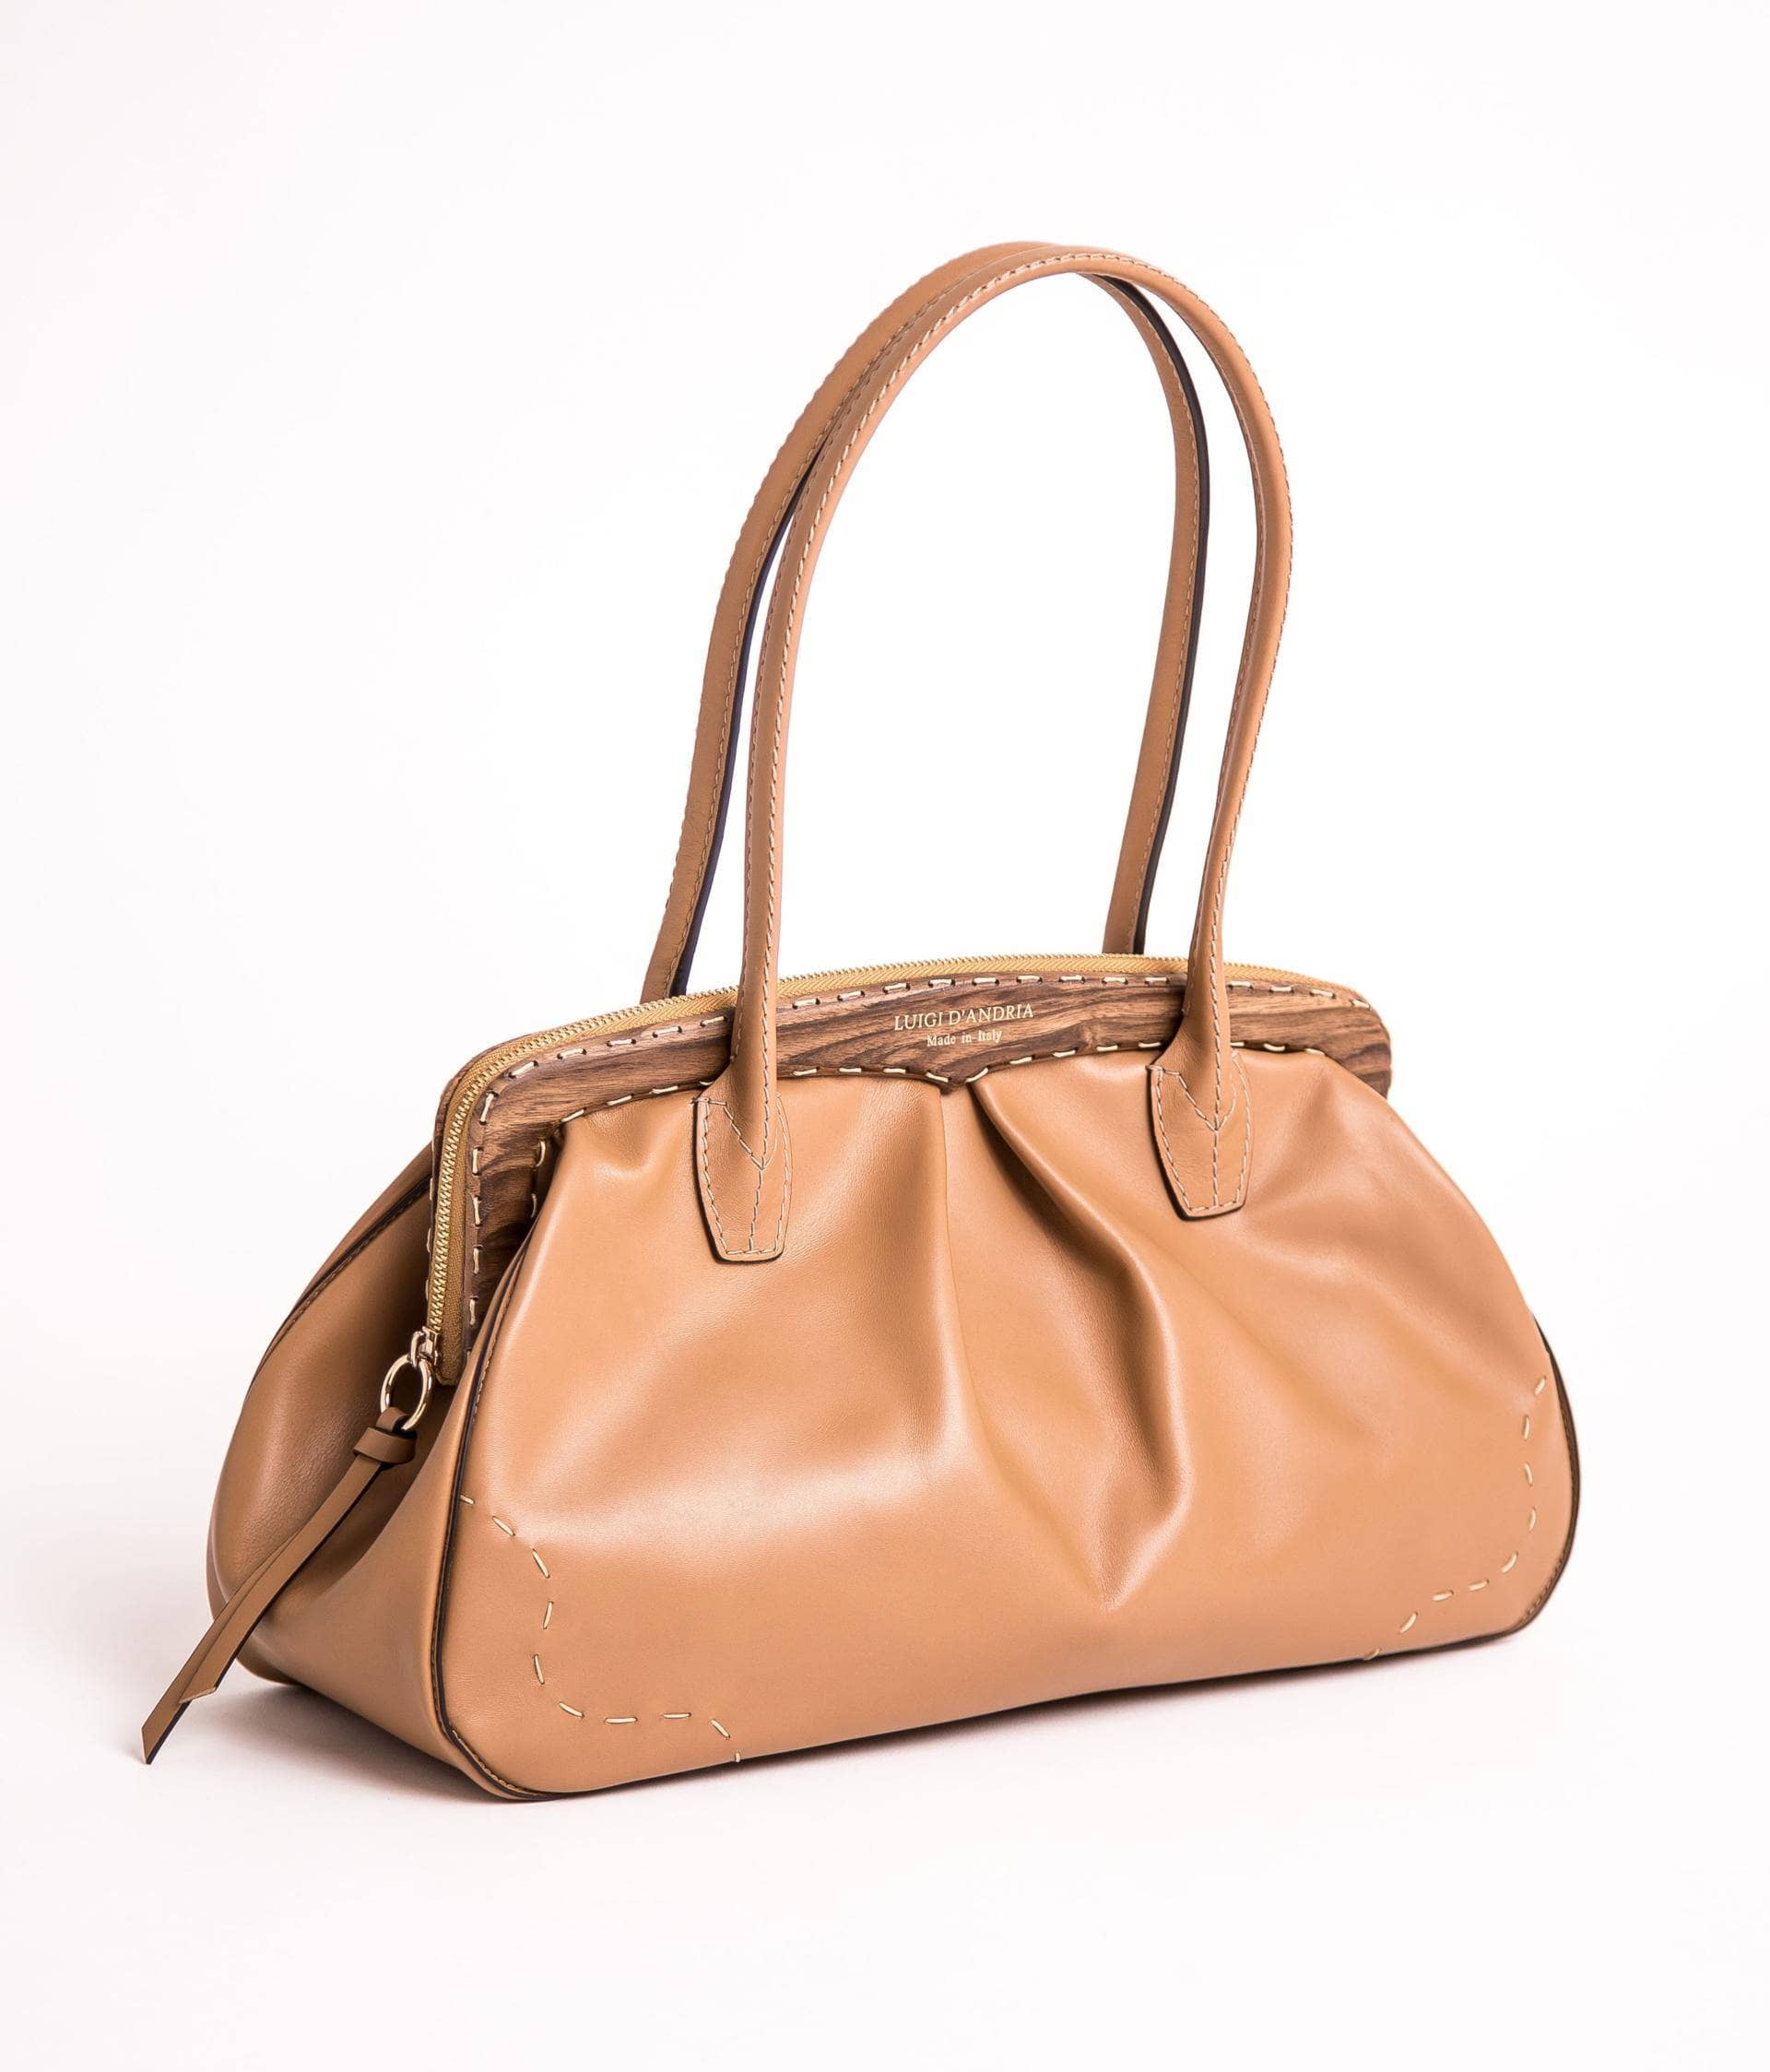 Wholesale Italian handbags directly from manufacturers and brands in Italy